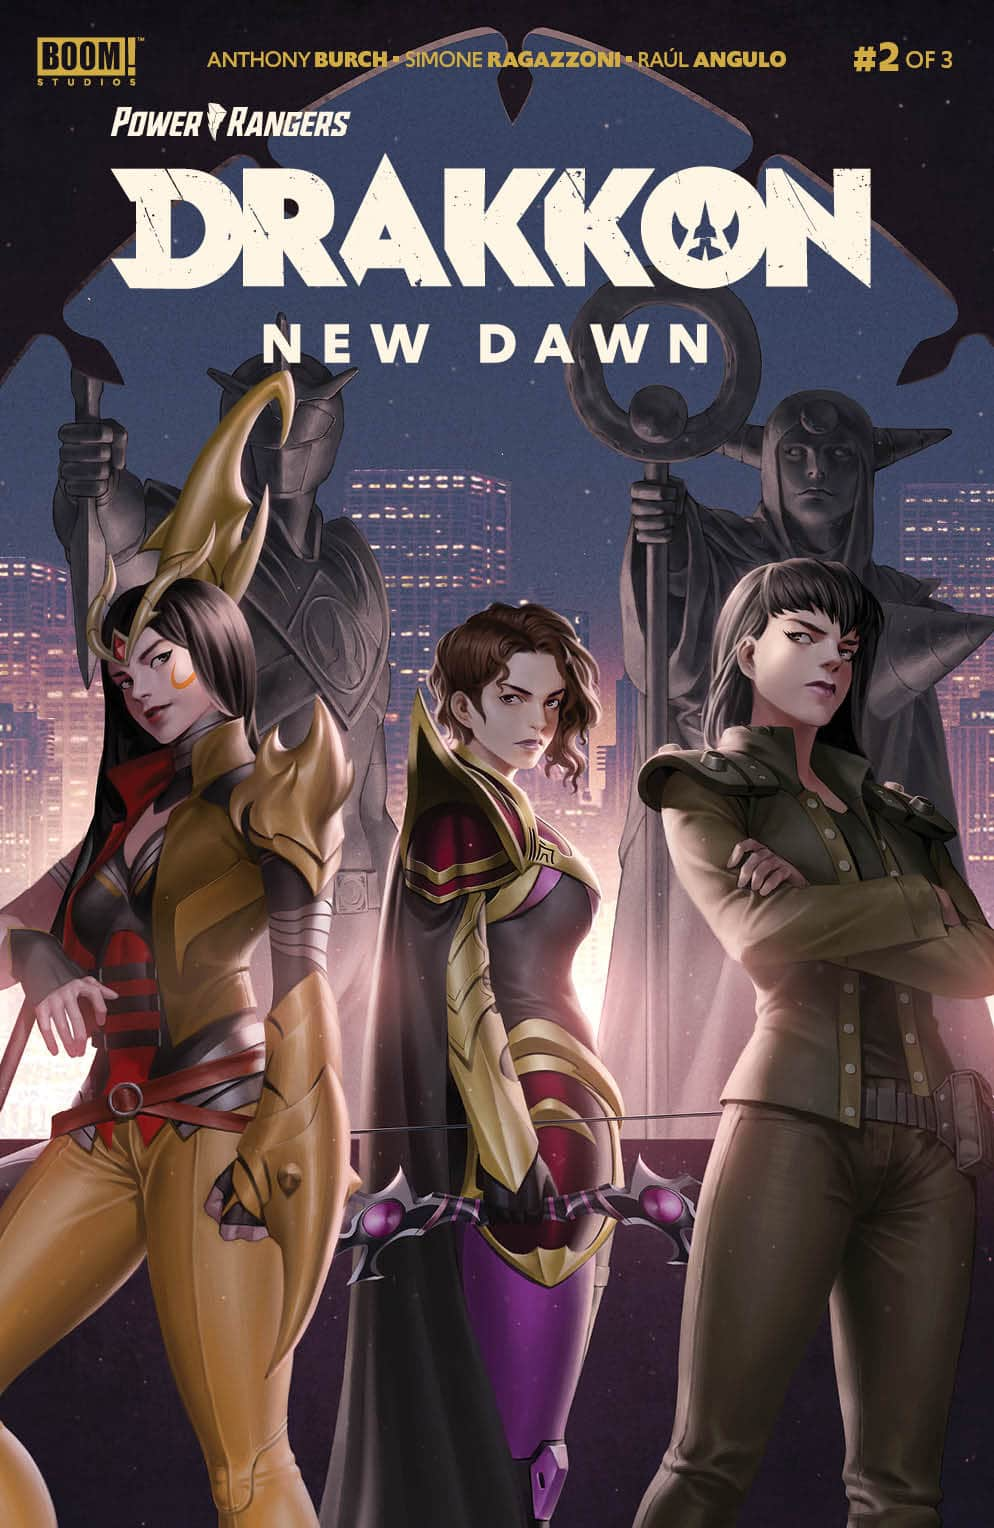 Power Rangers: Drakon New Dawn #2 Review